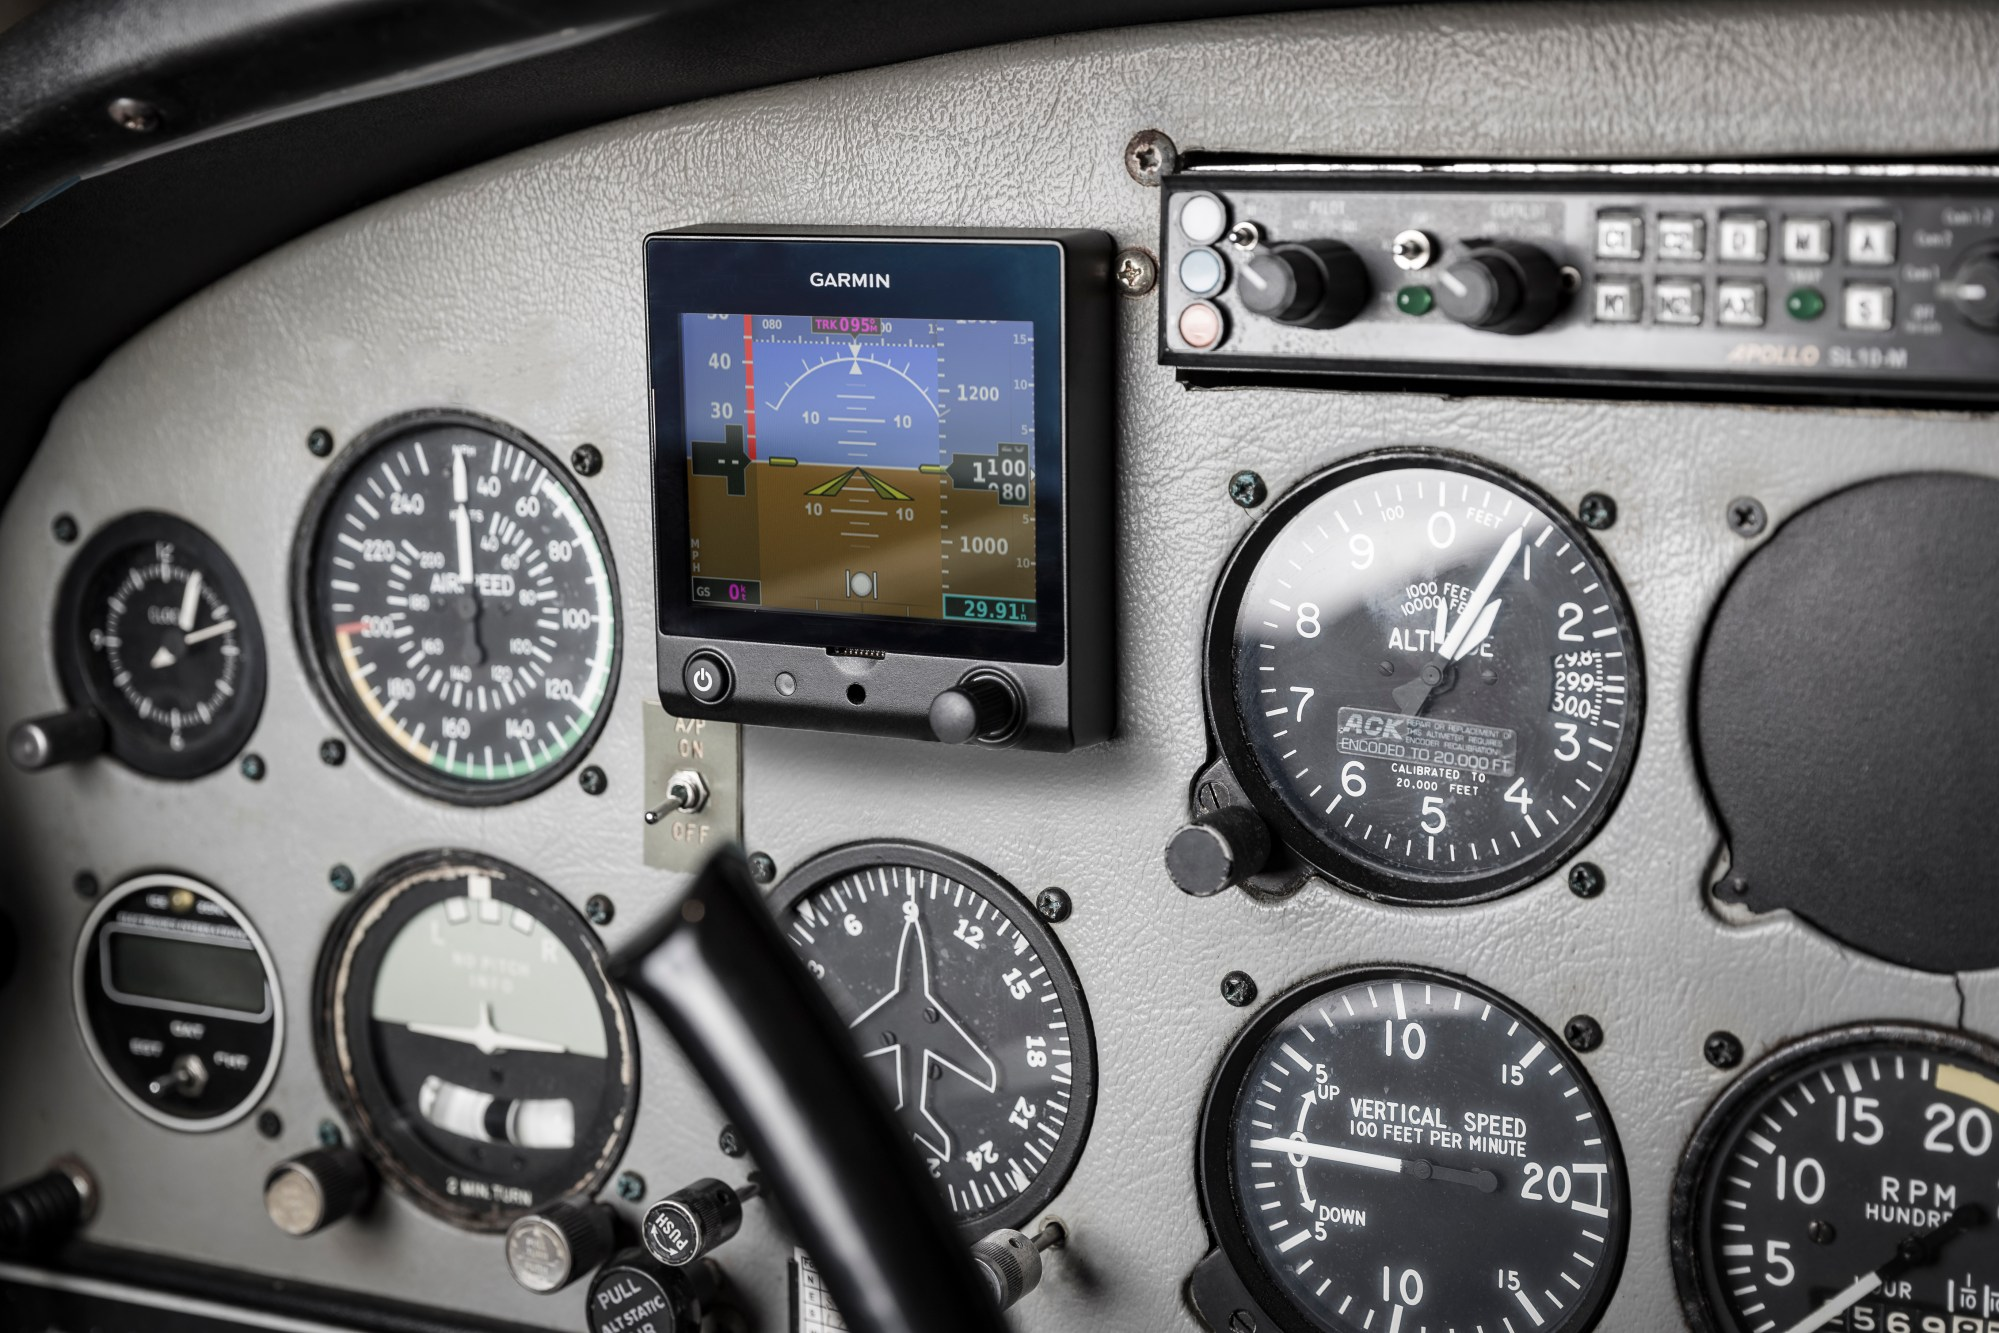 hight resolution of garmin introduces g5 electronic flight instrument for certificated aircraft business wire